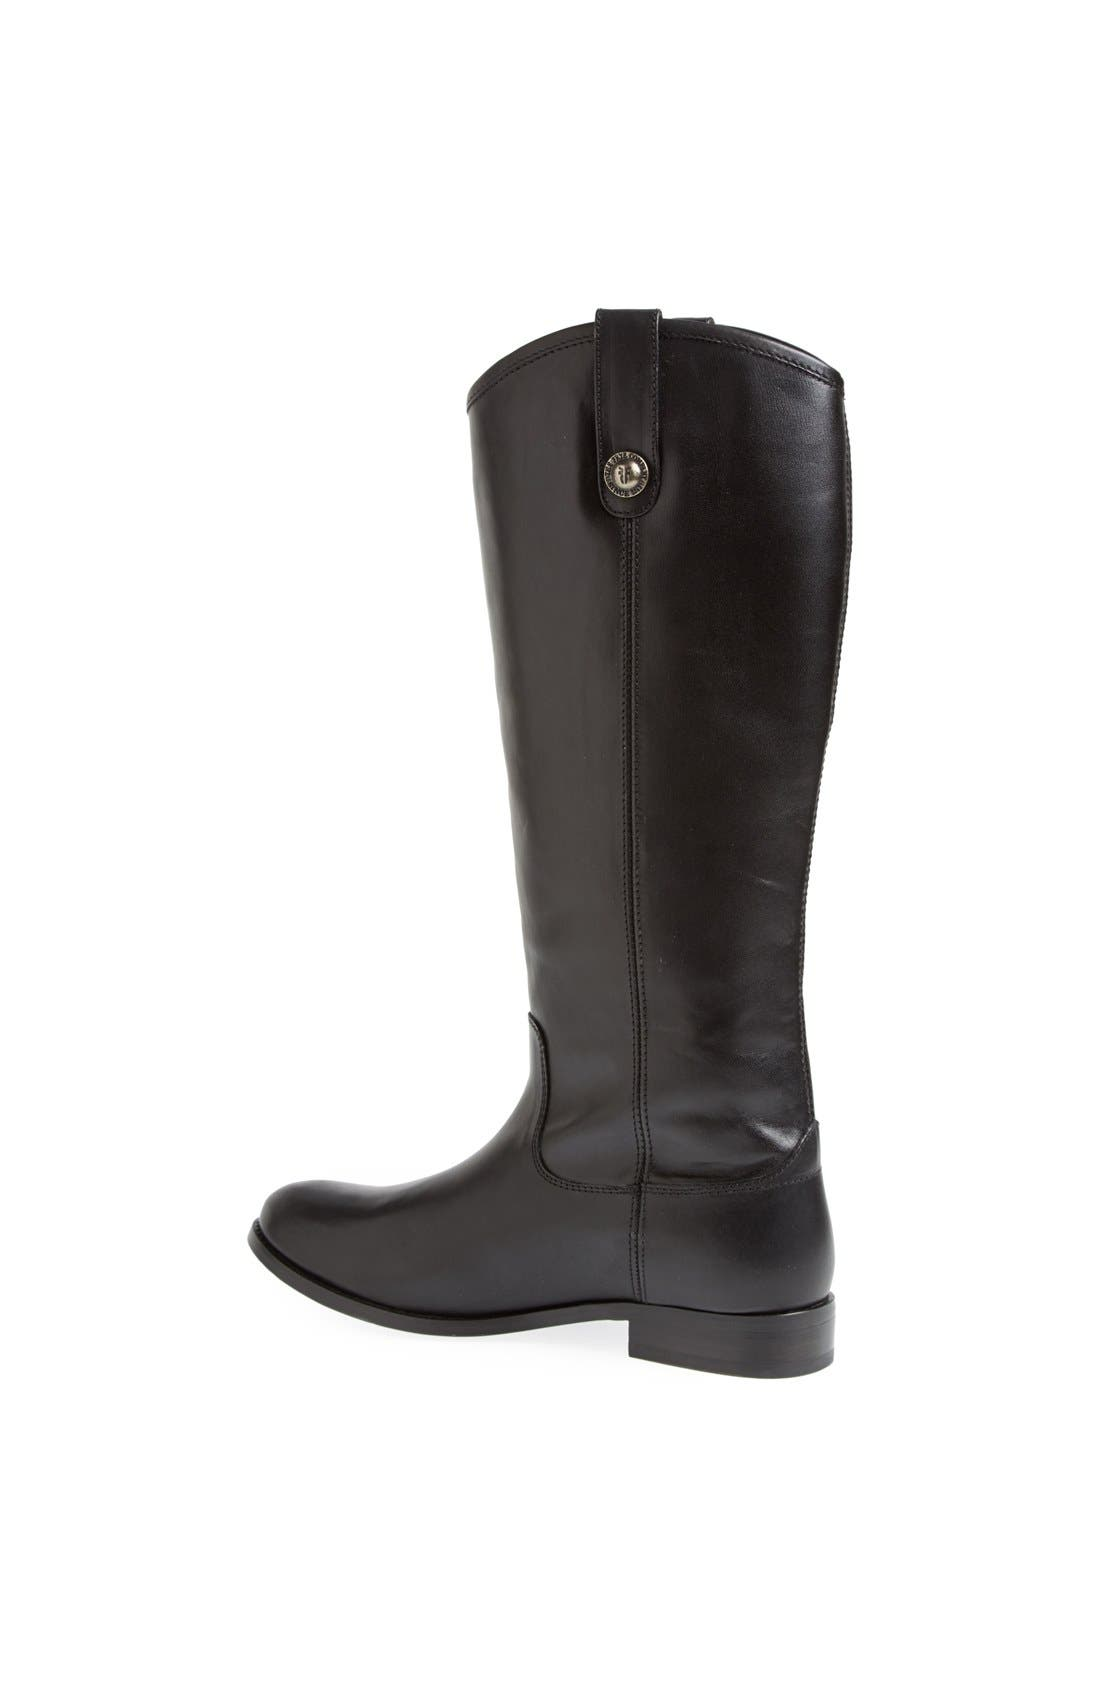 'Melissa Button' Leather Riding Boot,                             Alternate thumbnail 127, color,